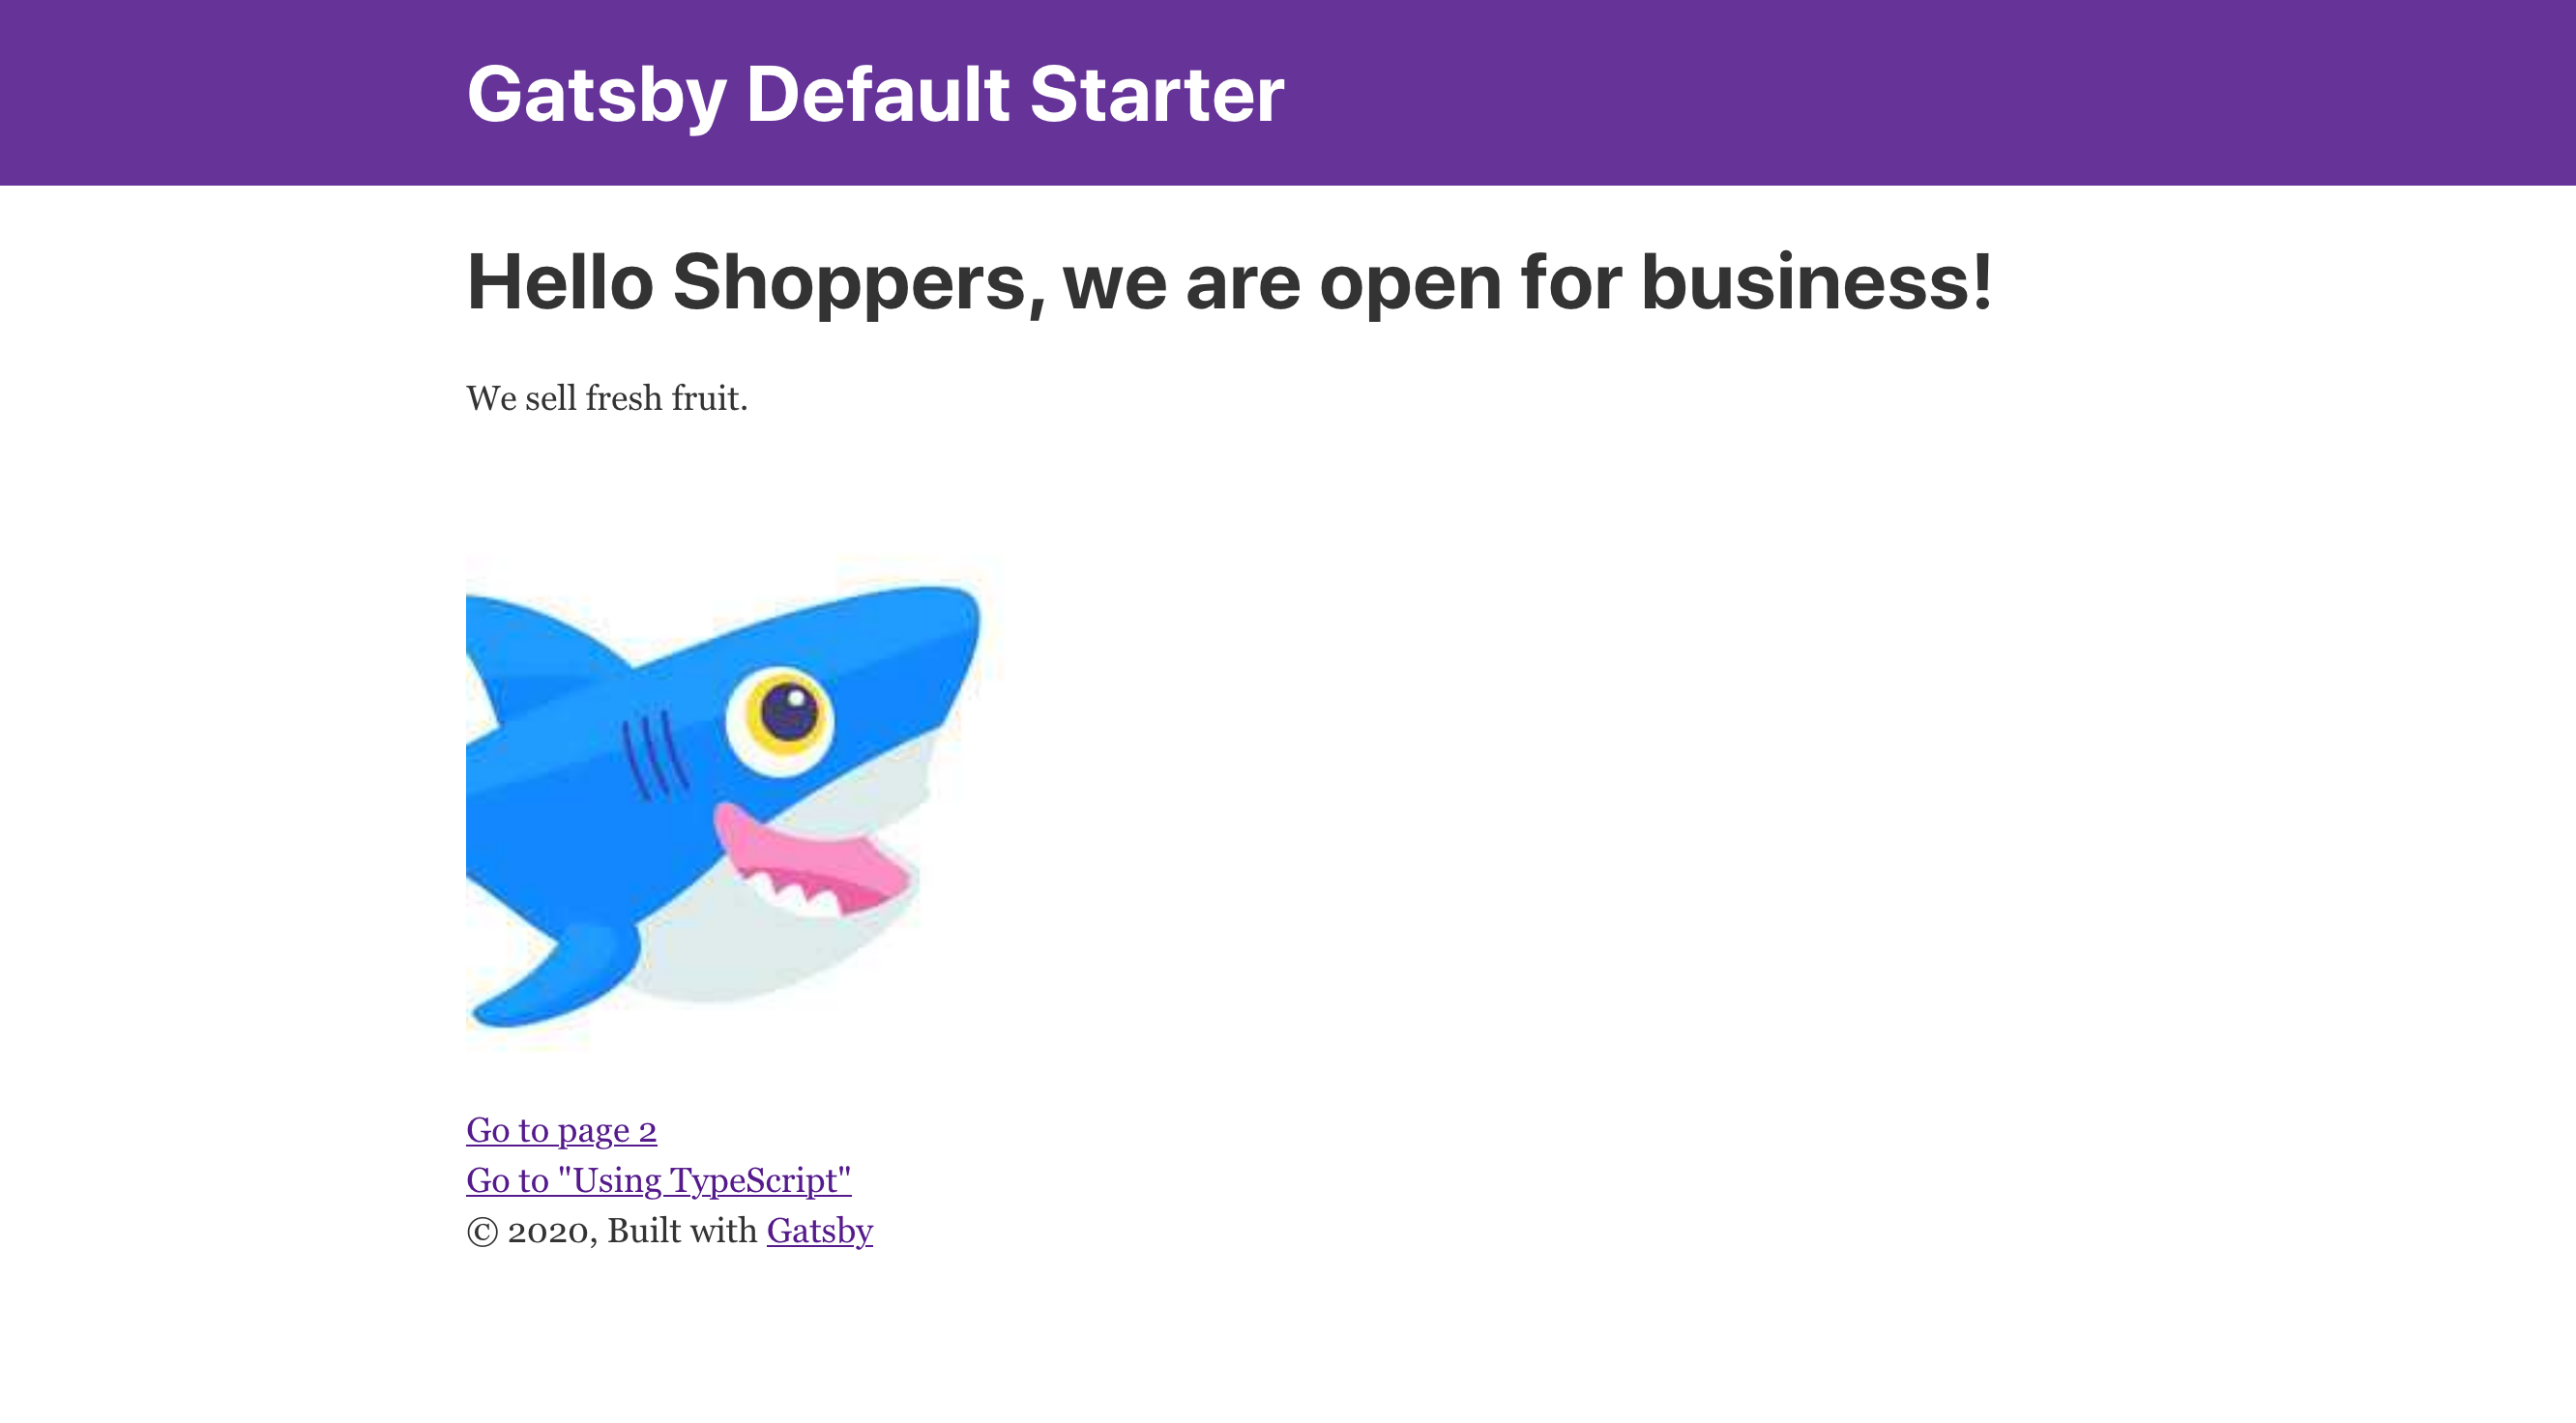 This is the final version of our Gatsby e-commerce site